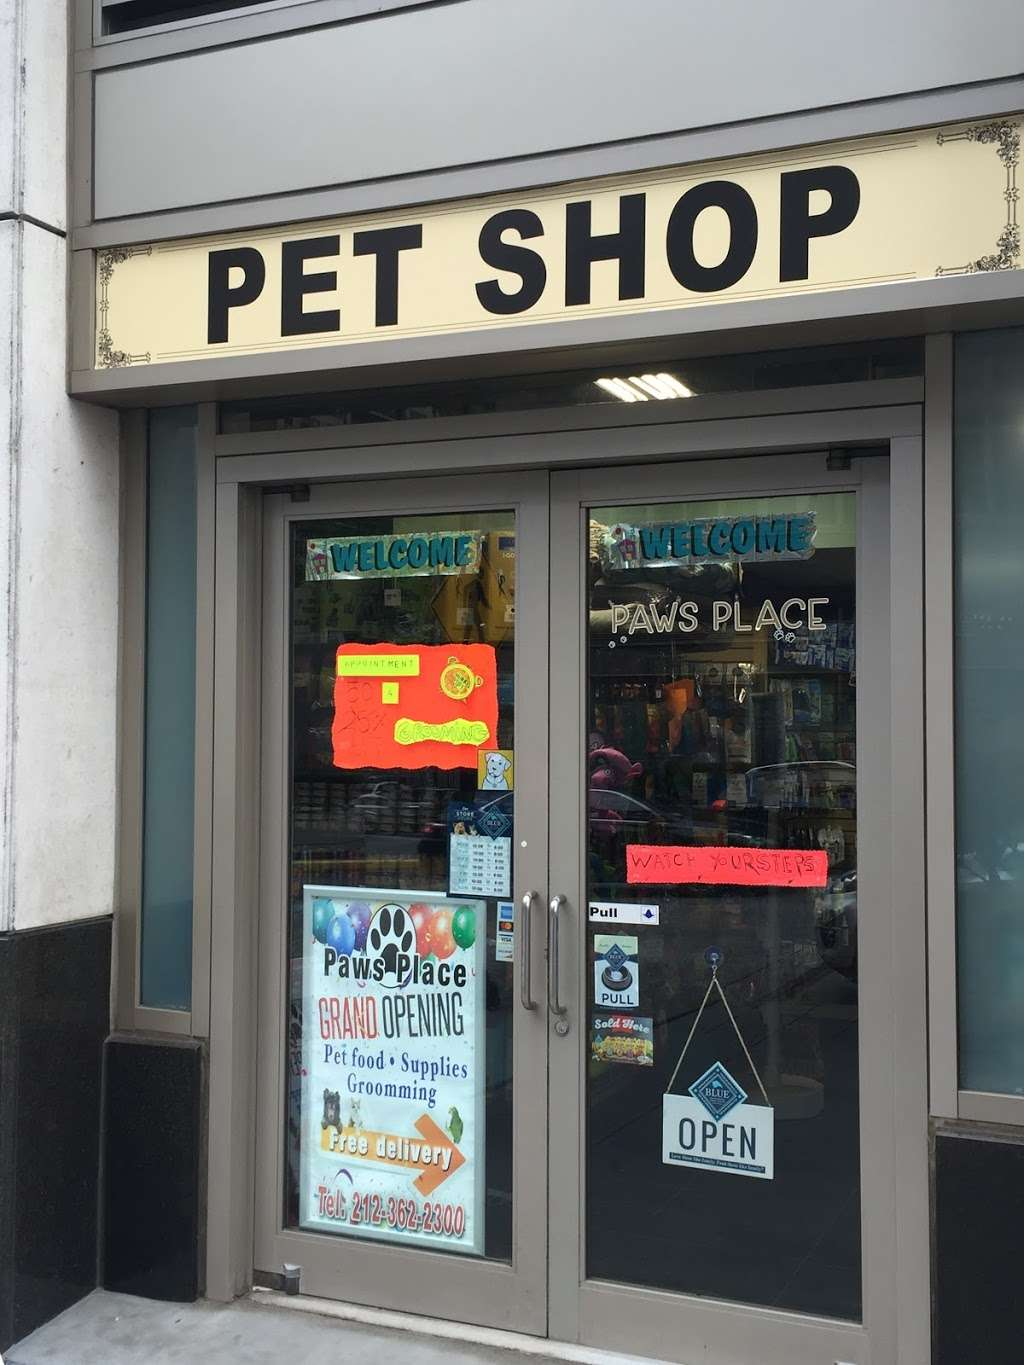 Paws Place - store  | Photo 2 of 2 | Address: 120 Riverside Blvd, New York, NY 10069, USA | Phone: (212) 362-2300